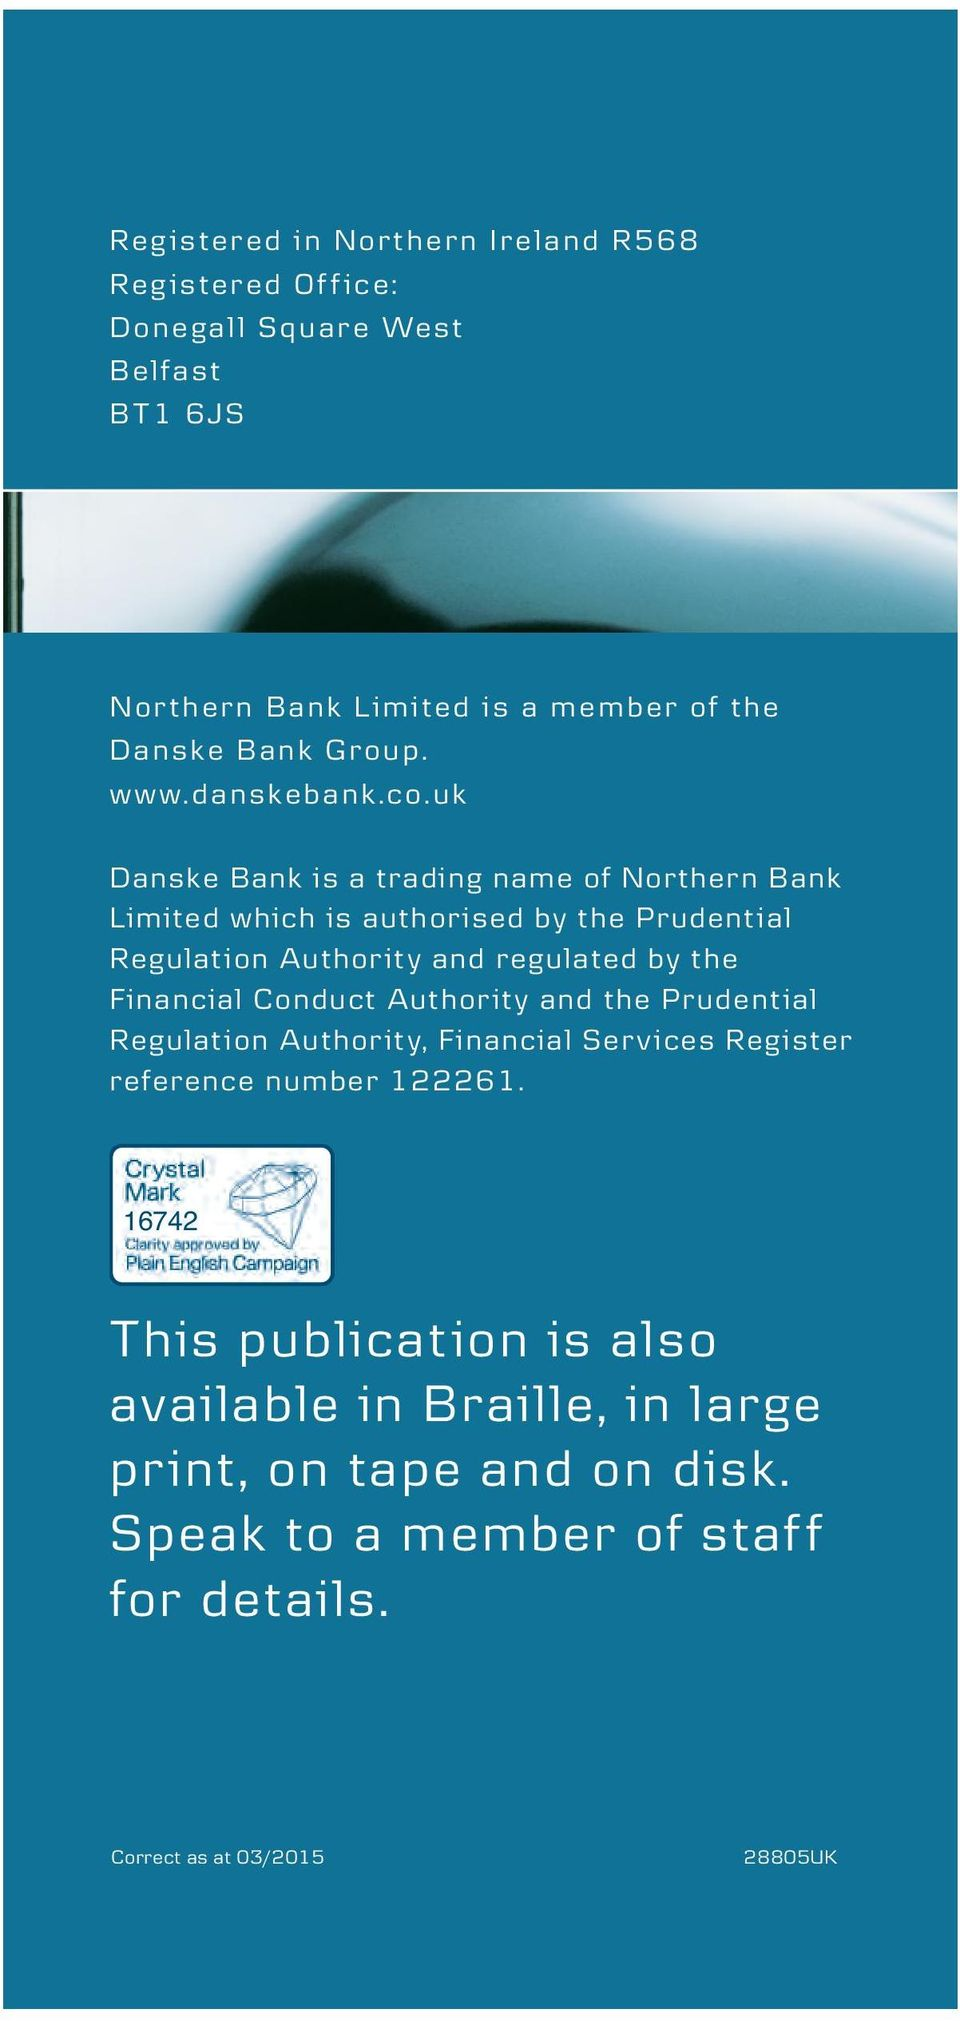 uk Danske Bank is a trading name of Northern Bank Limited which is authorised by the Prudential Regulation Authority and regulated by the Financial